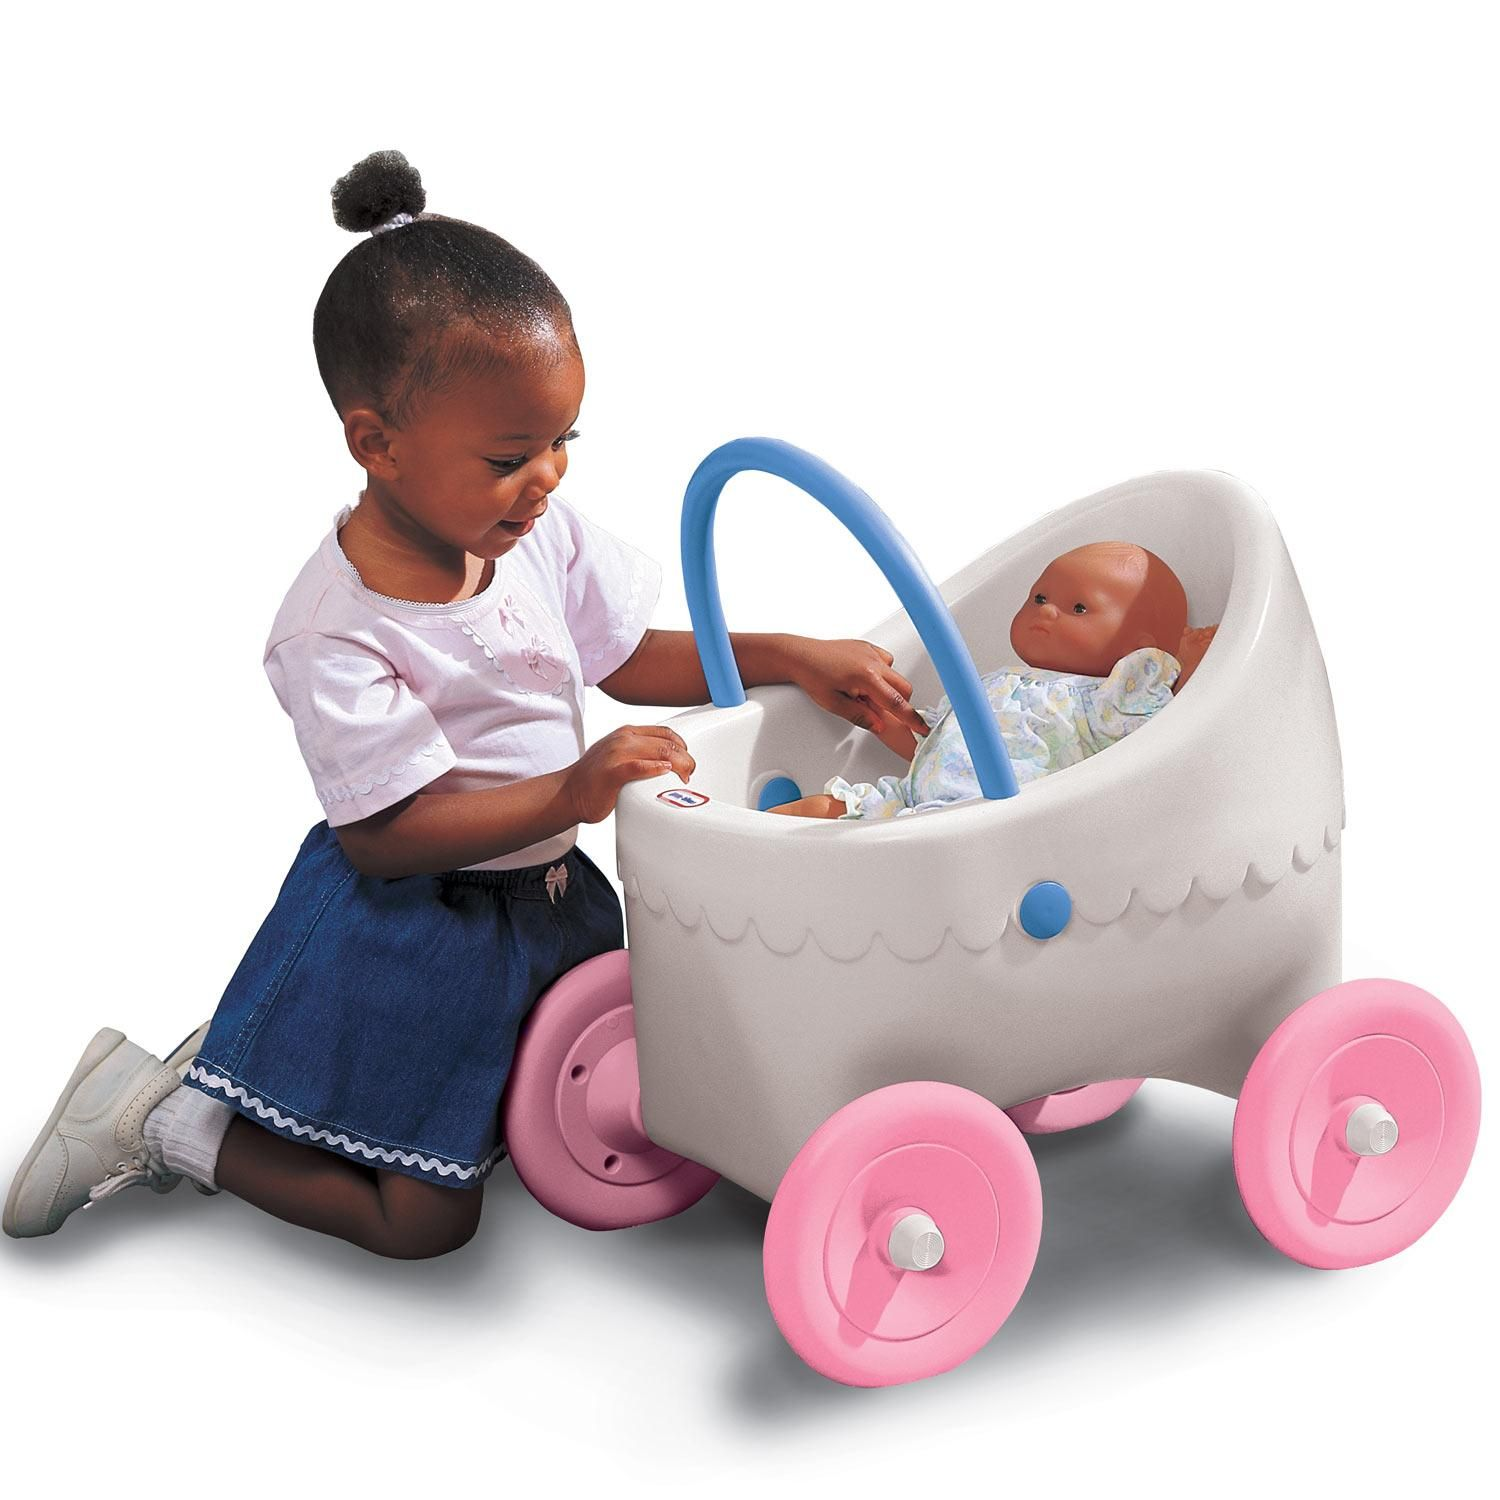 Classic Doll Buggy Little tikes, Tikes toys, Little girl